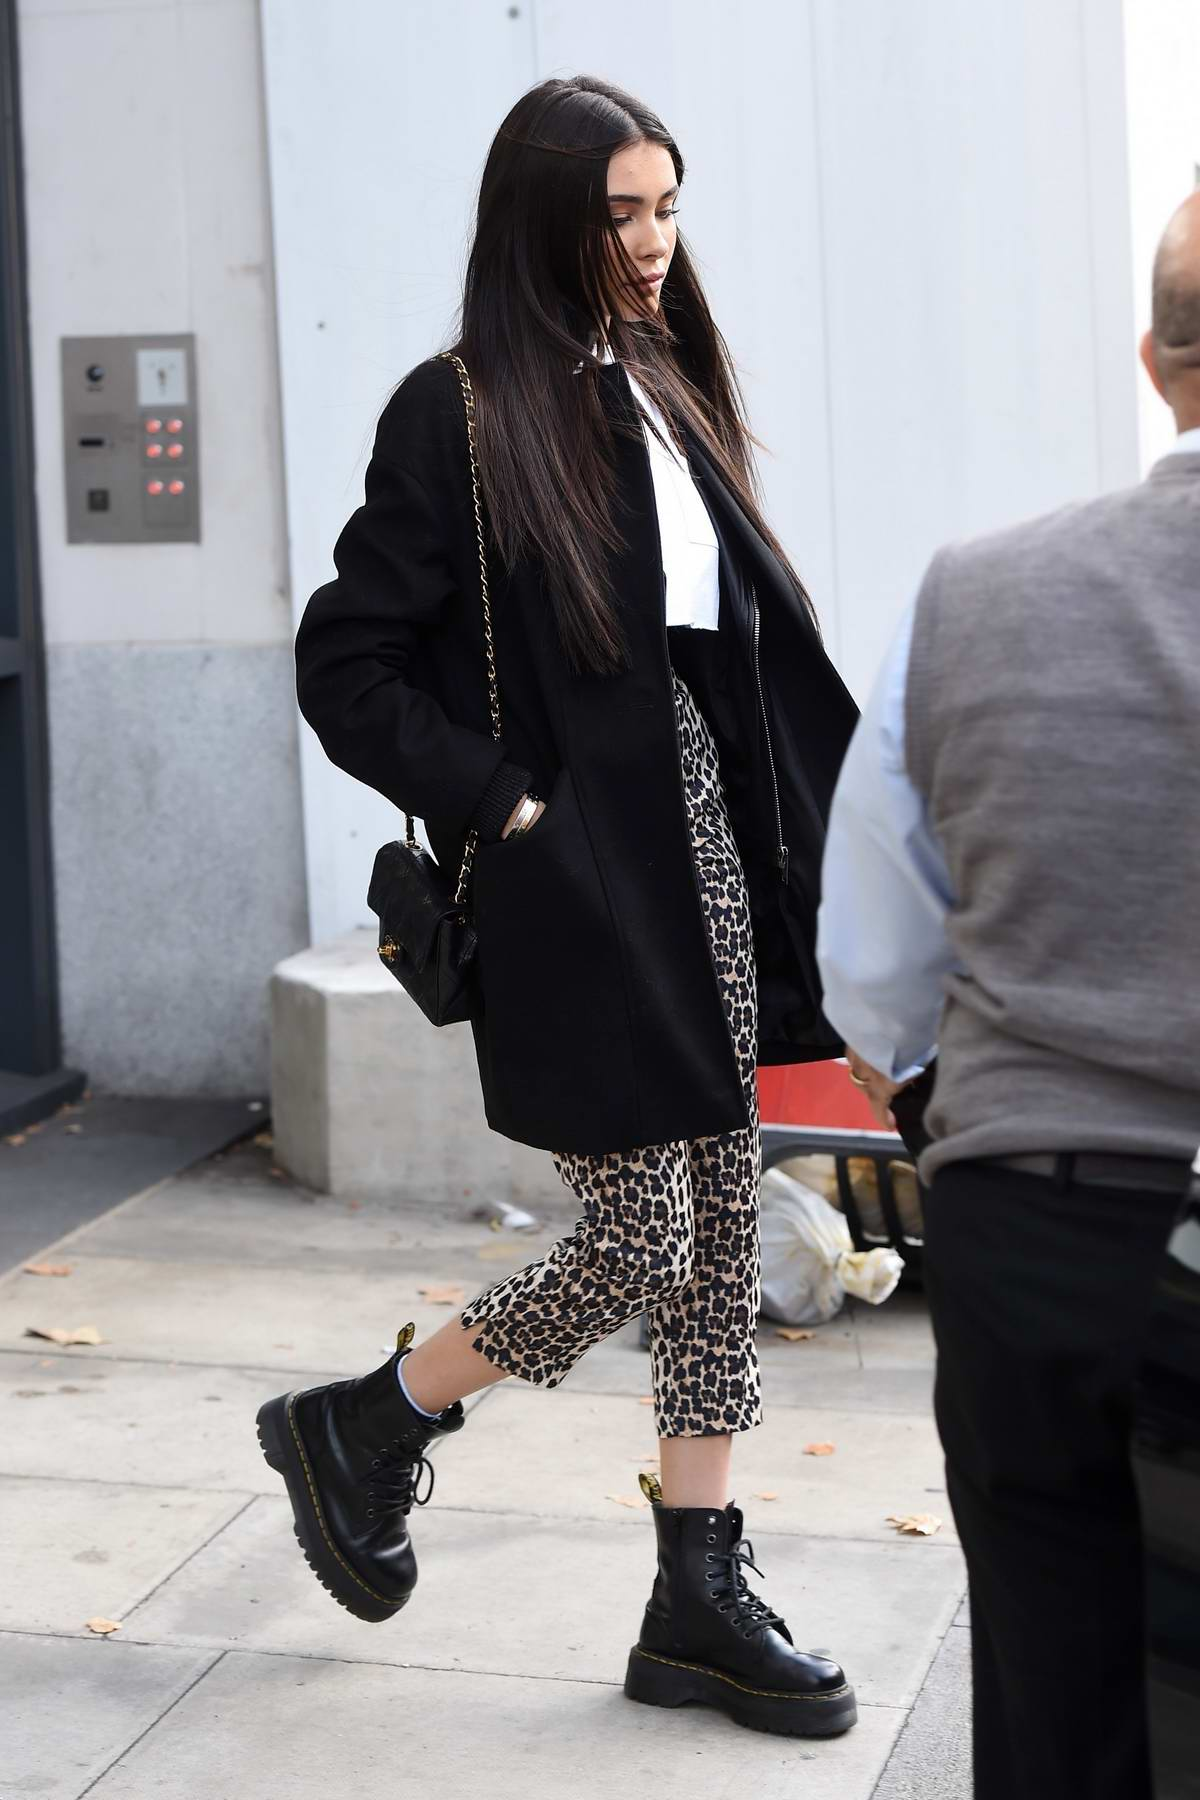 ebe6270874d5 madison beer leaving the vevo offices in london, uk-231018_3